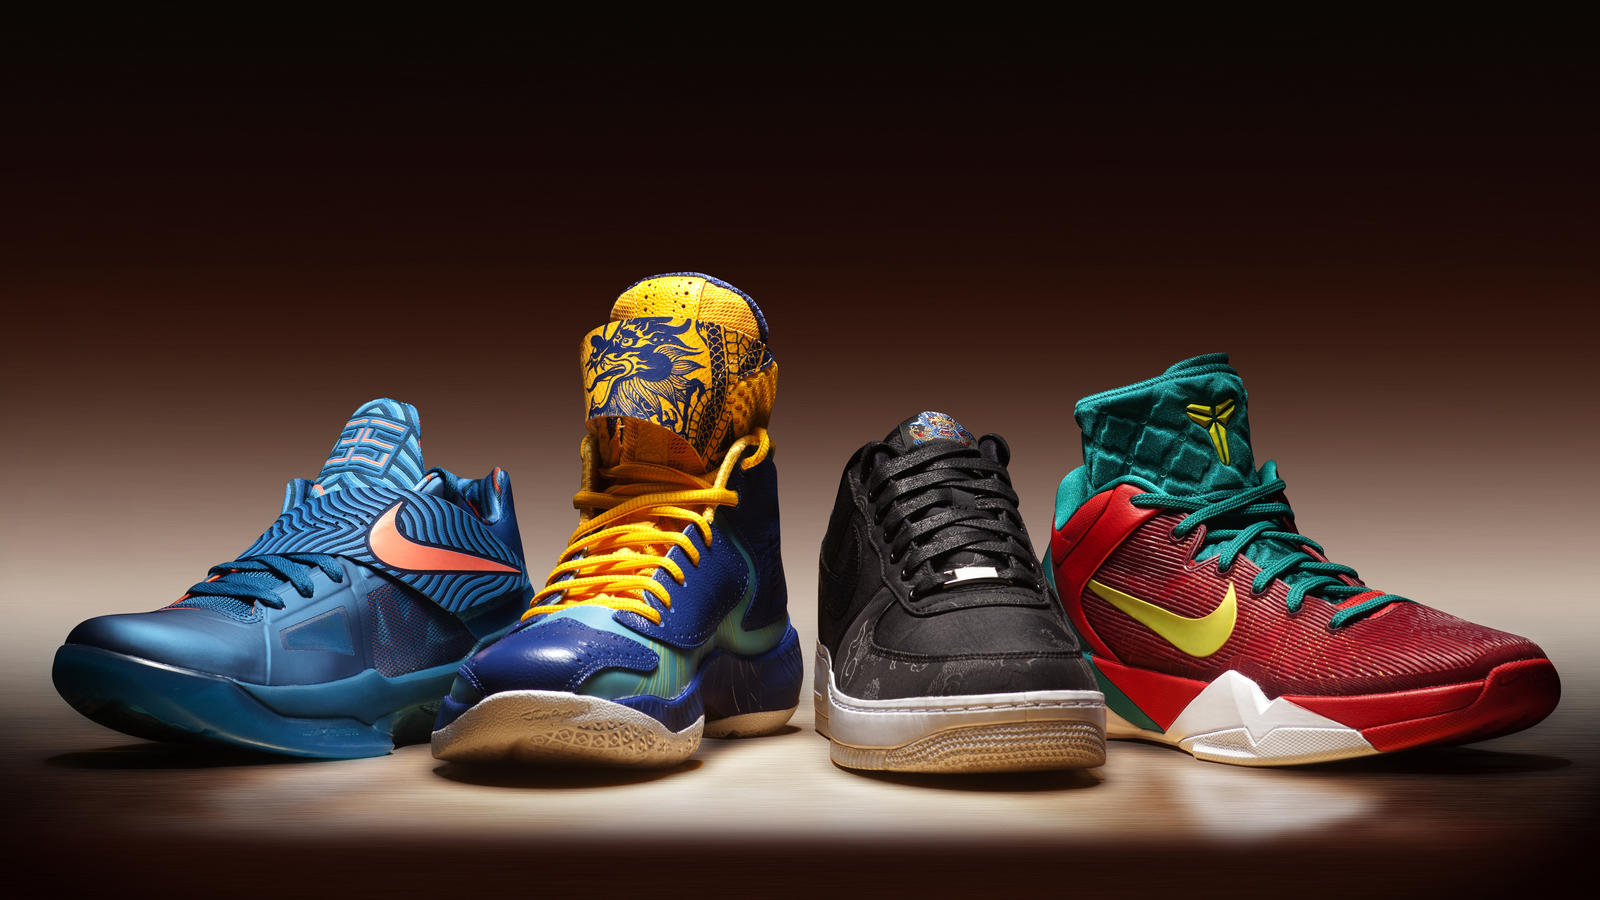 Nike introduces  Year of the Dragon  collection - Nike News ce04d3d8c